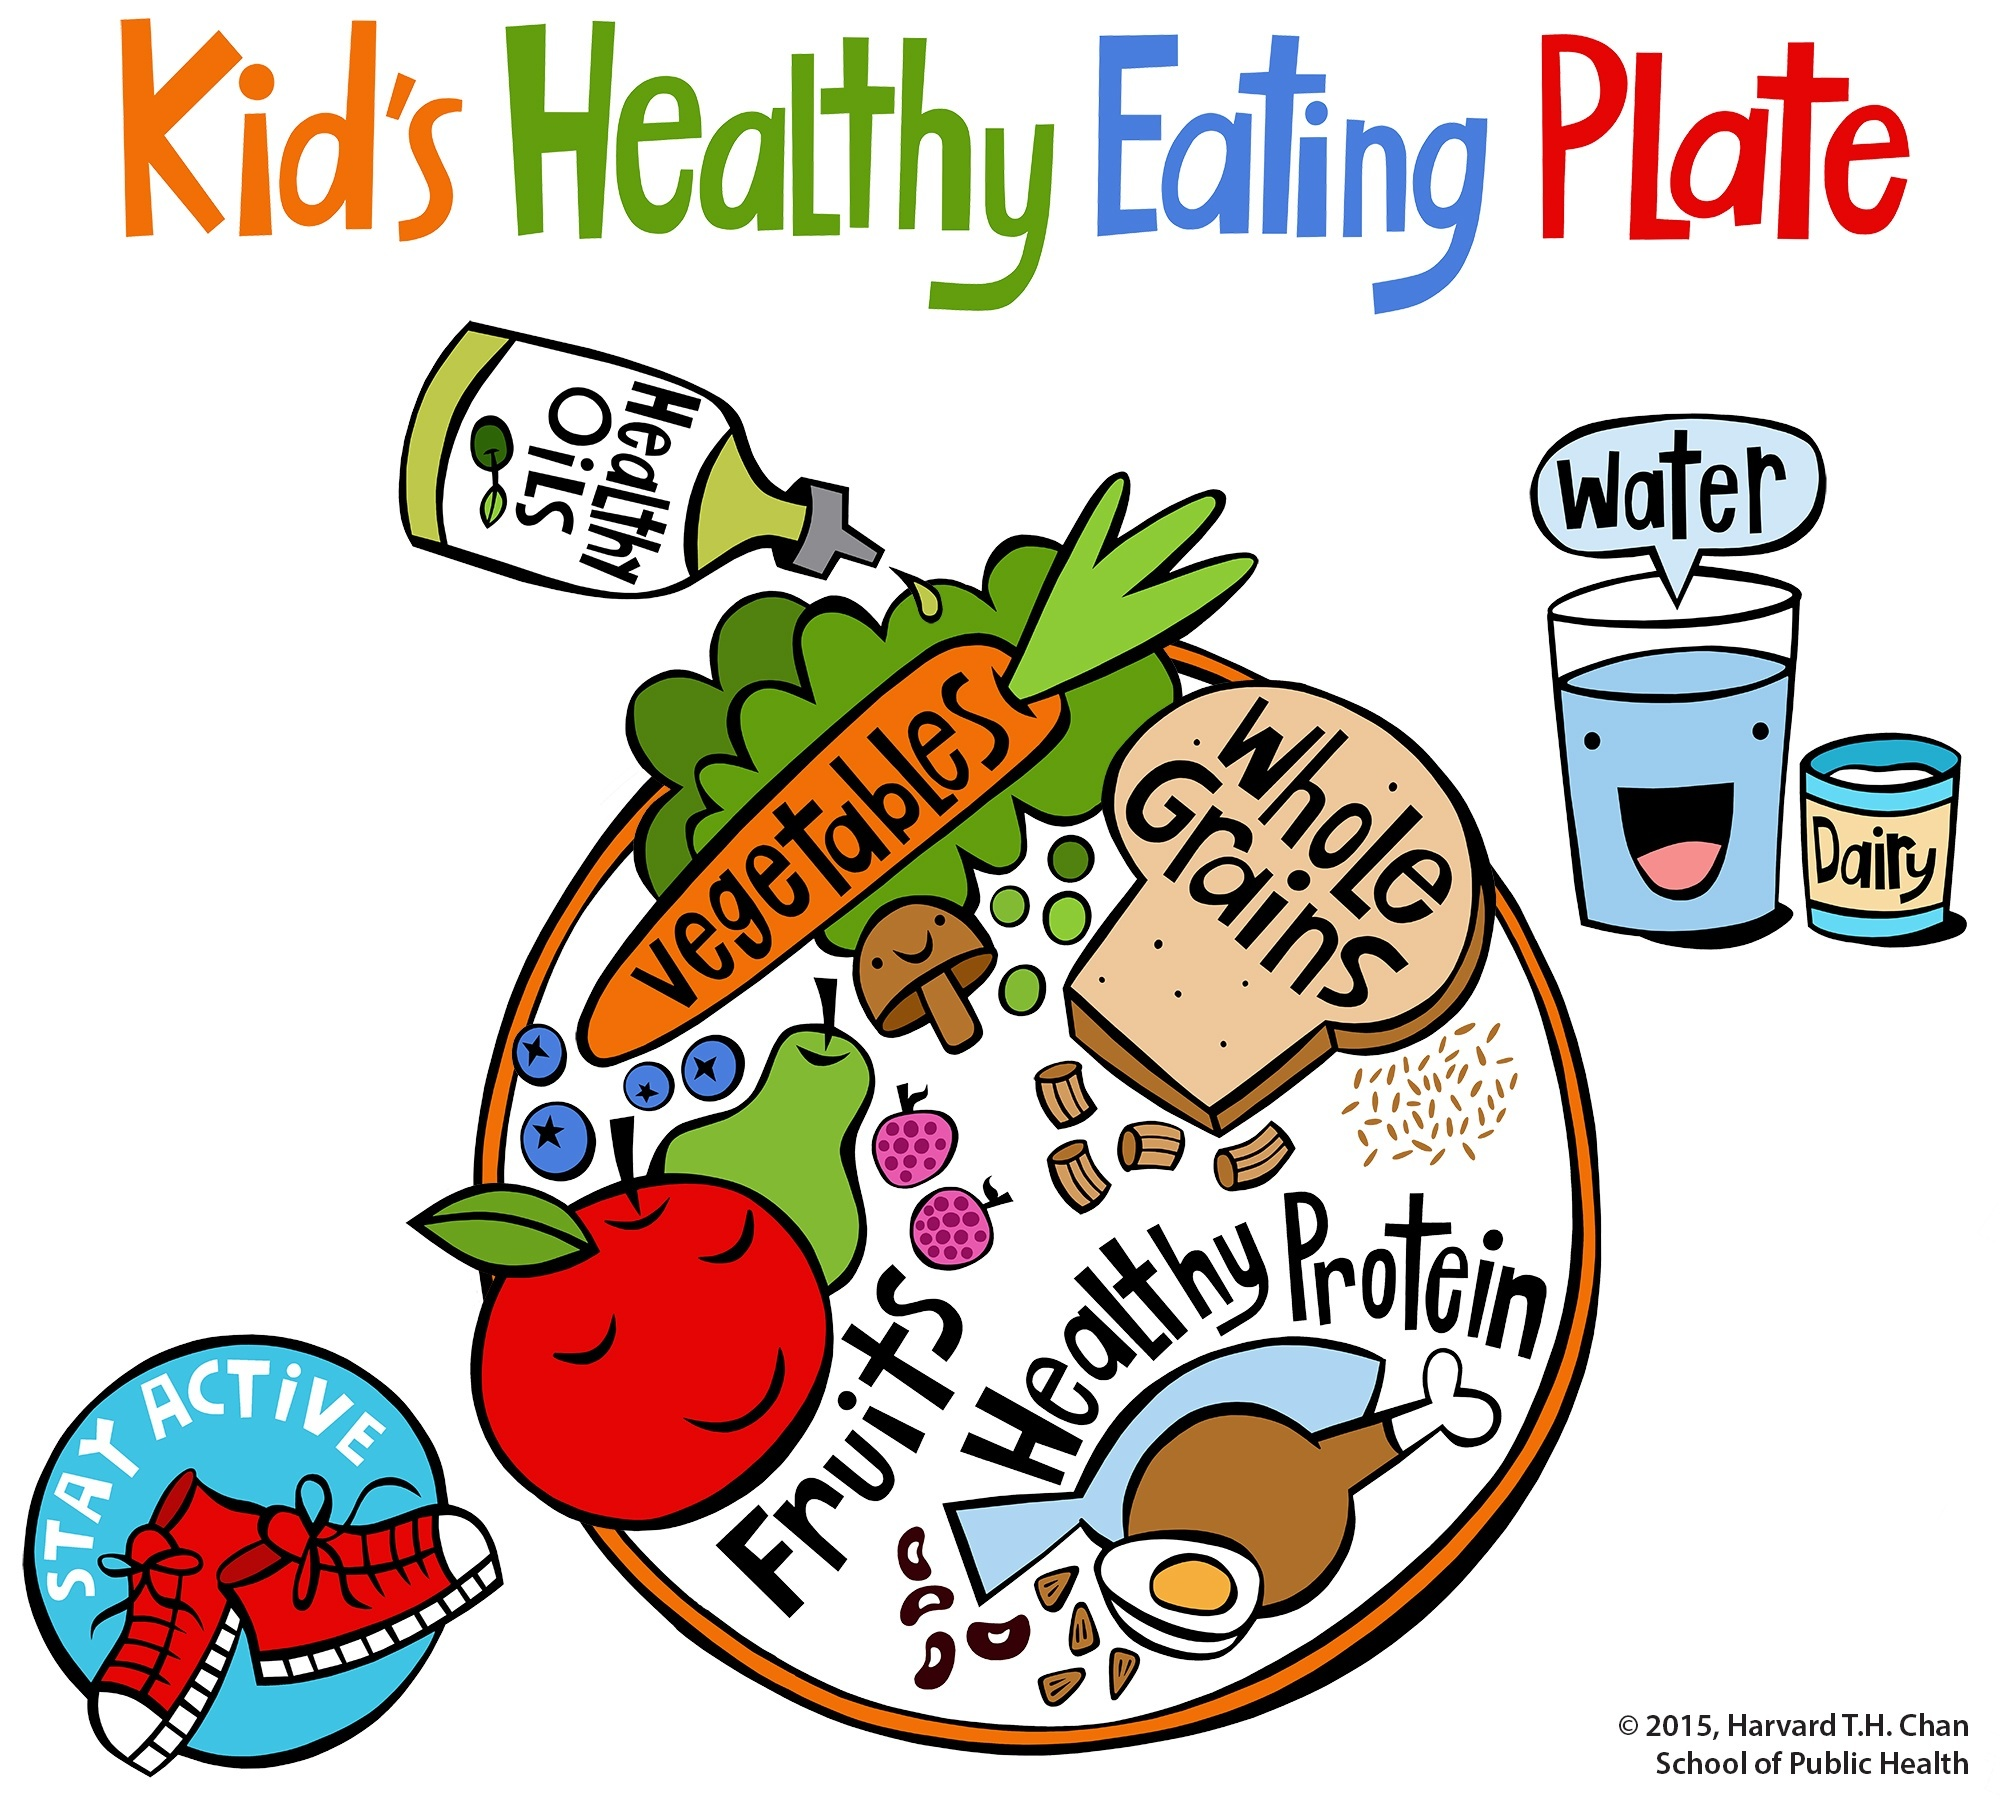 For good health what to eat - Kid Shealthyeatingplate_jan2016